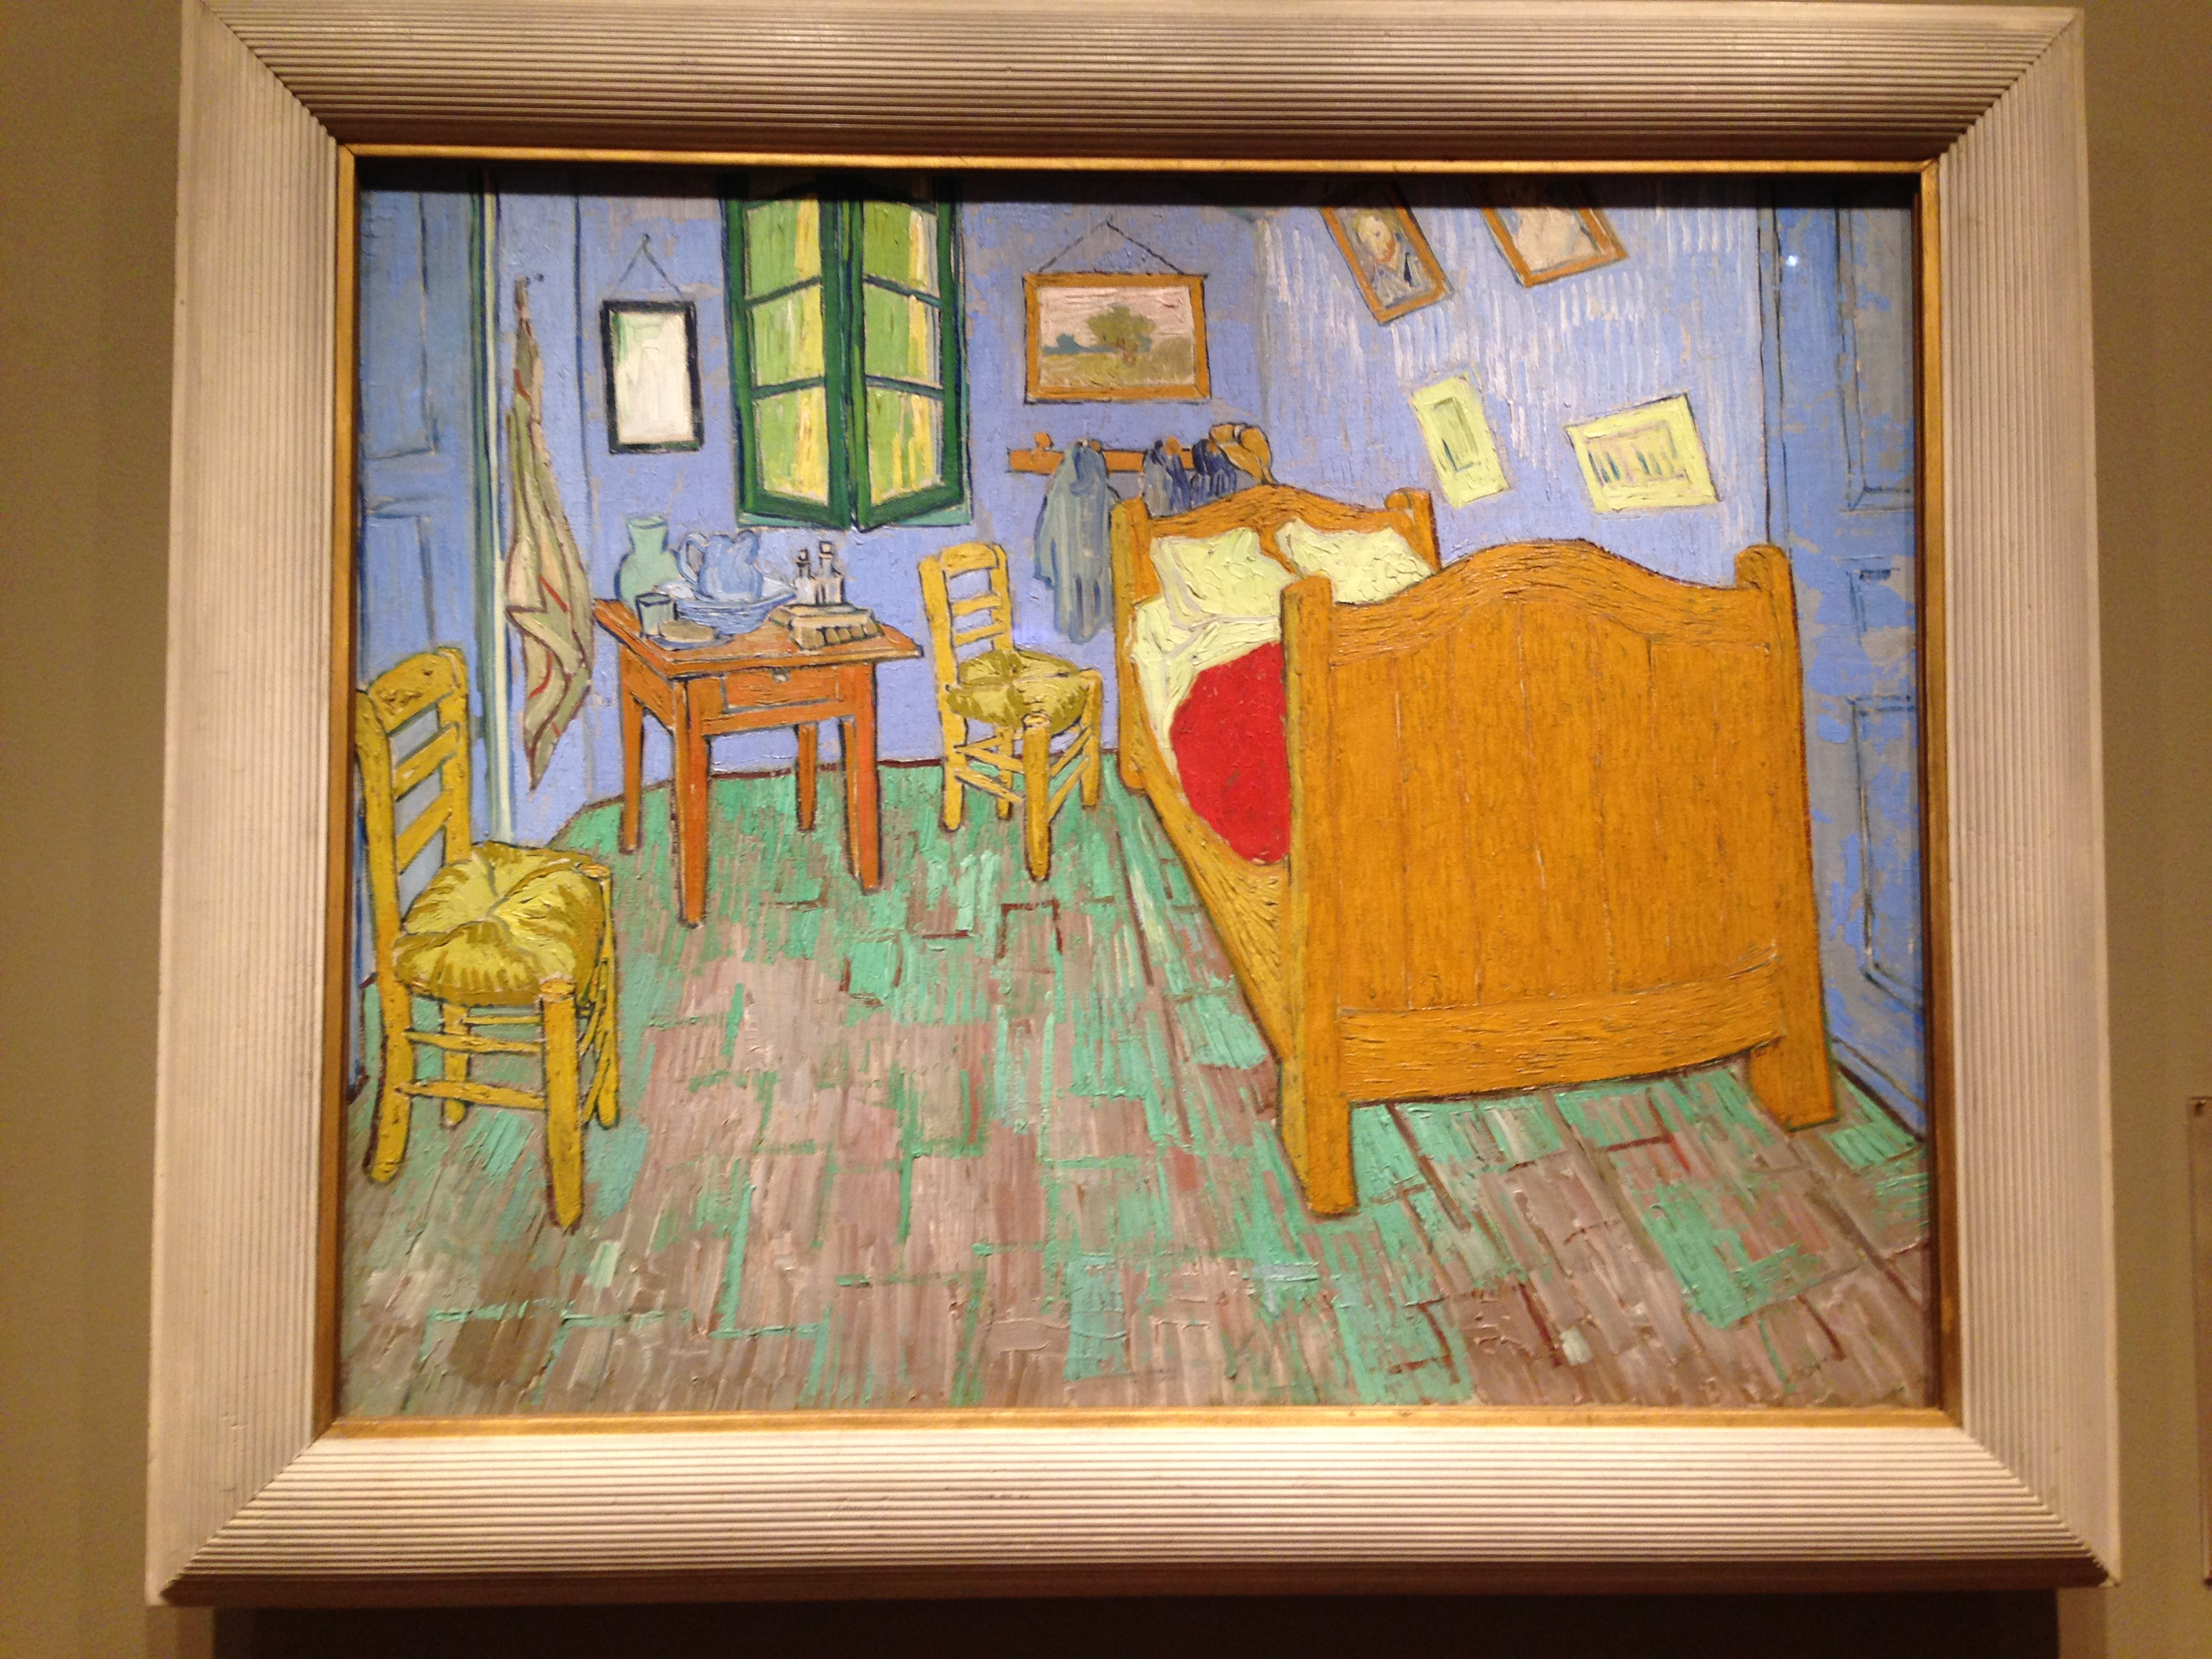 Van Gogh's The Bedroom